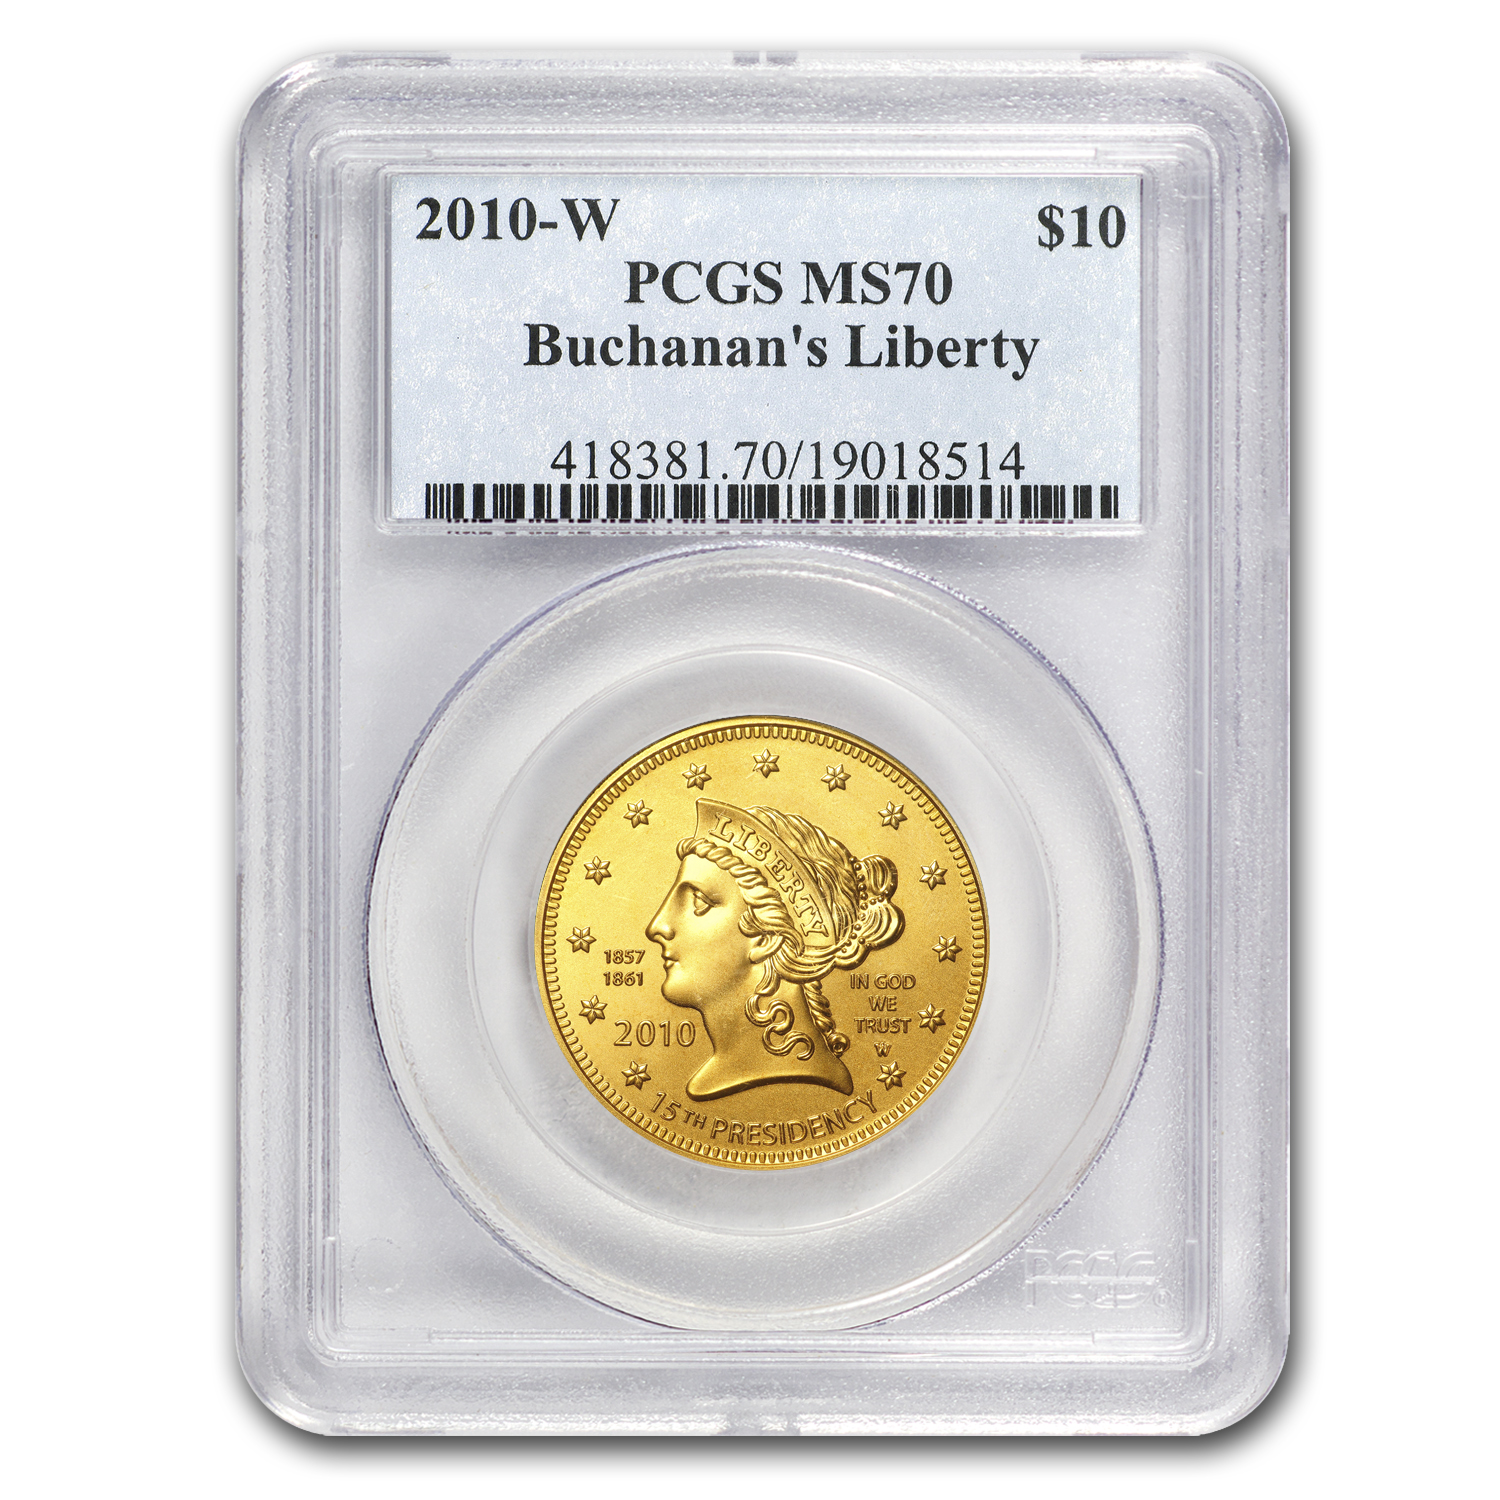 2010-W 1/2 oz Gold Buchanan's Liberty MS-70 PCGS